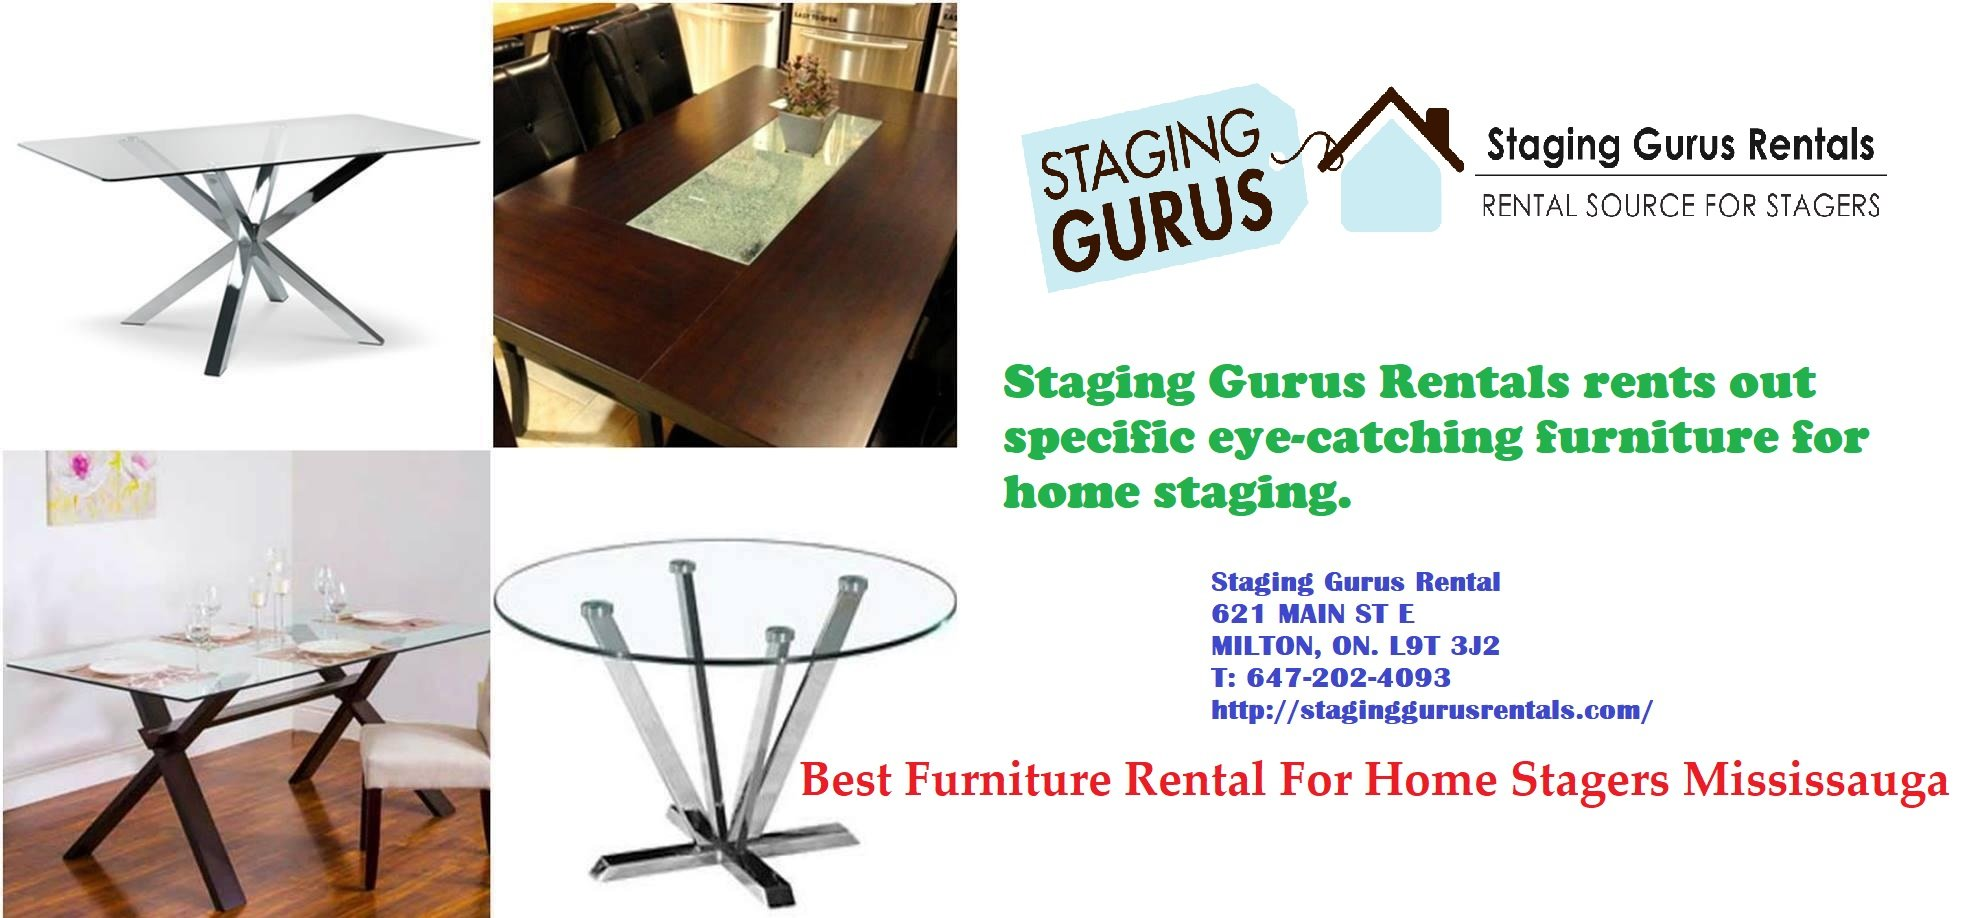 Best Furniture Rental For Home Stagers Mississauga